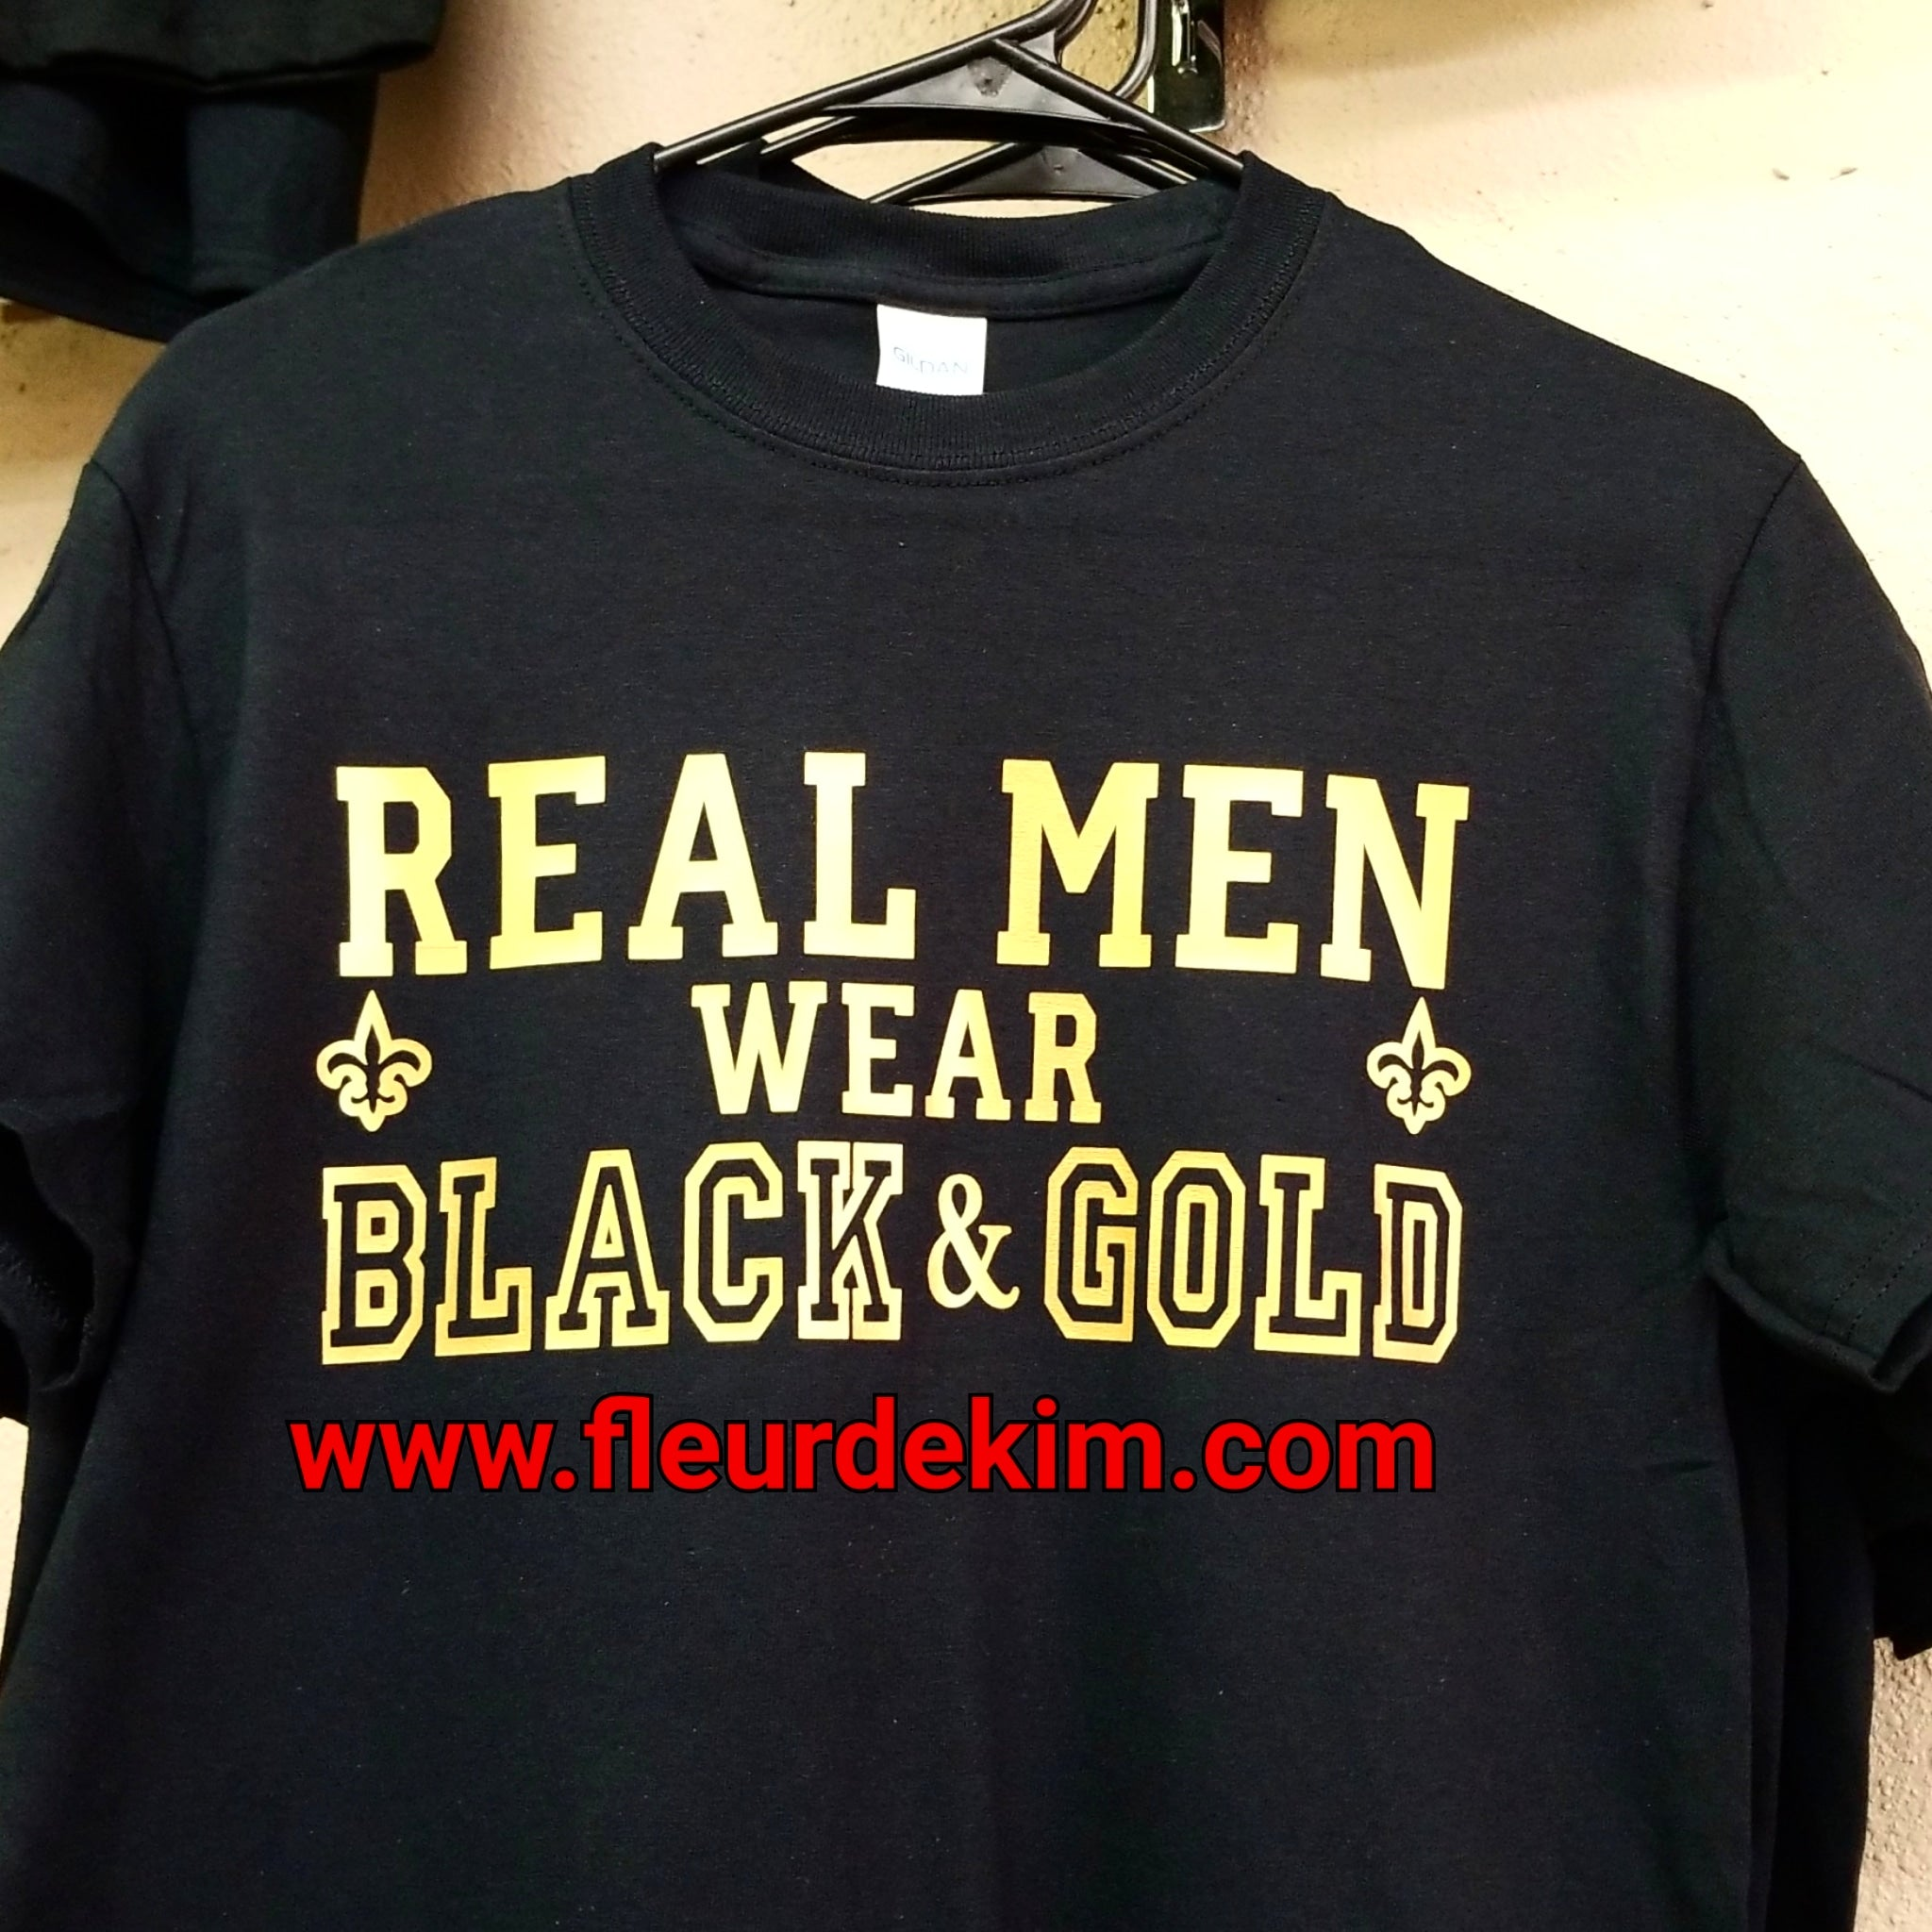 """Real Men"" wear black & gold tshirt"